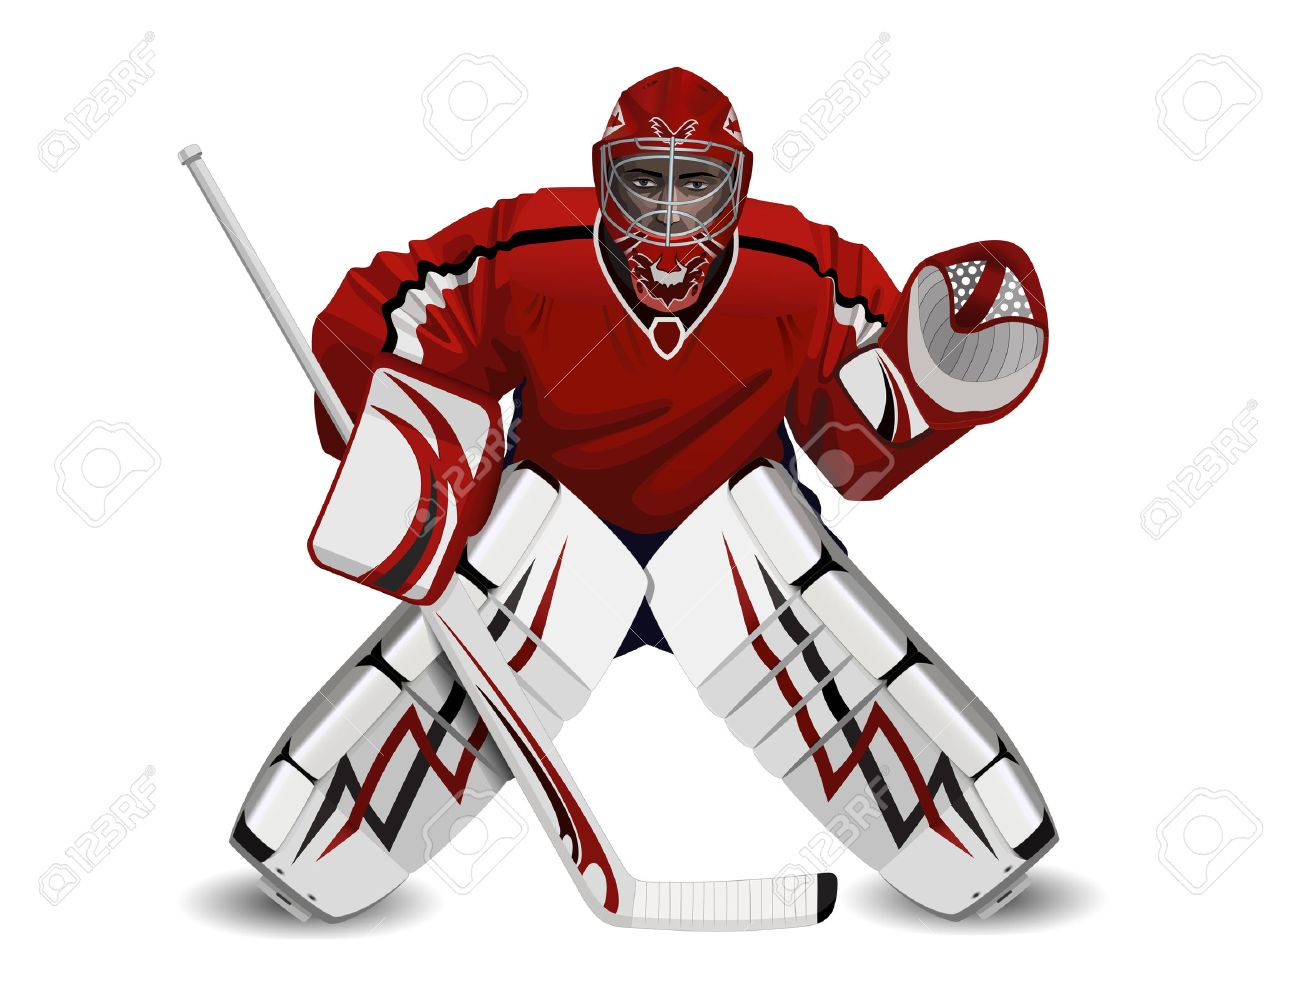 hockey images u0026 stock pictures royalty free hockey photos and